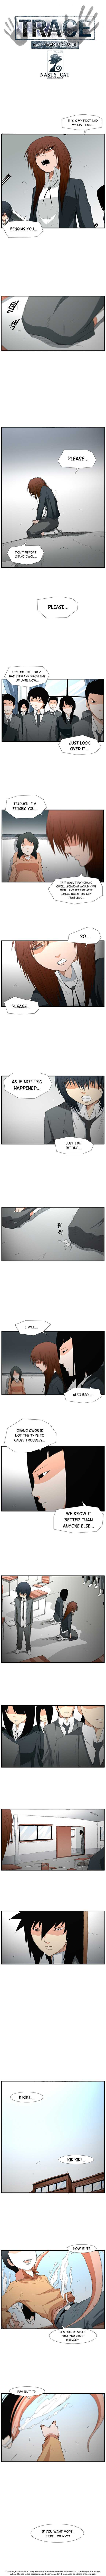 Trace 19 Page 1